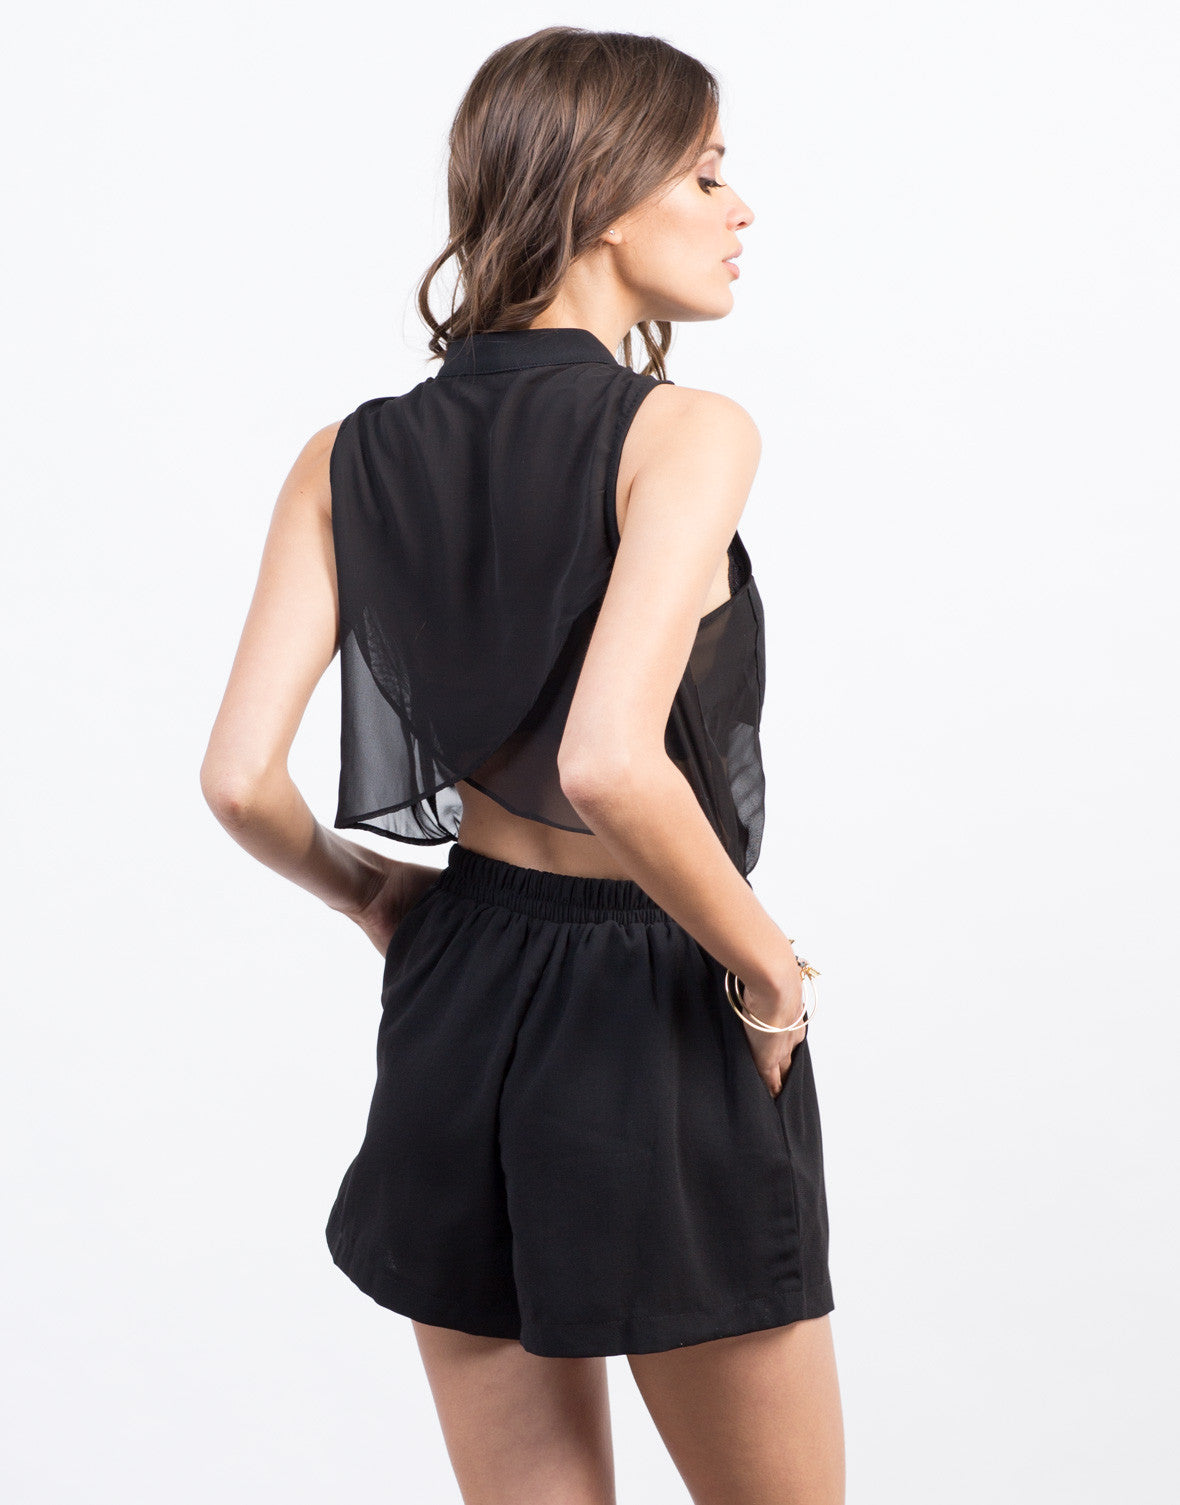 Back View of Sheer Contrast Sleeveless Romper